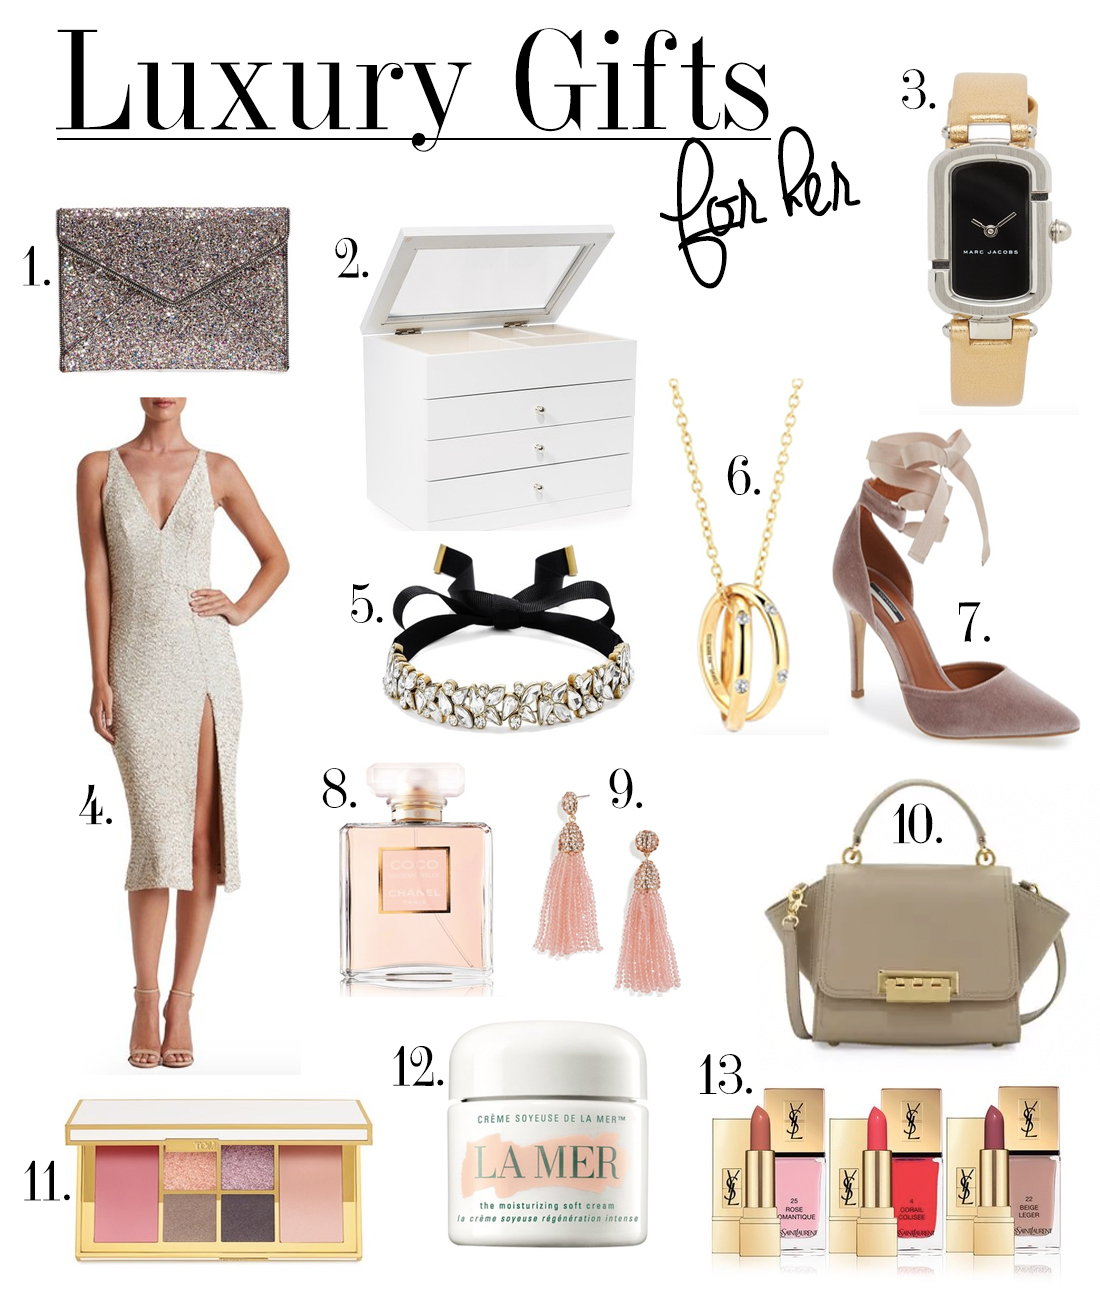 Luxury gift guide for her